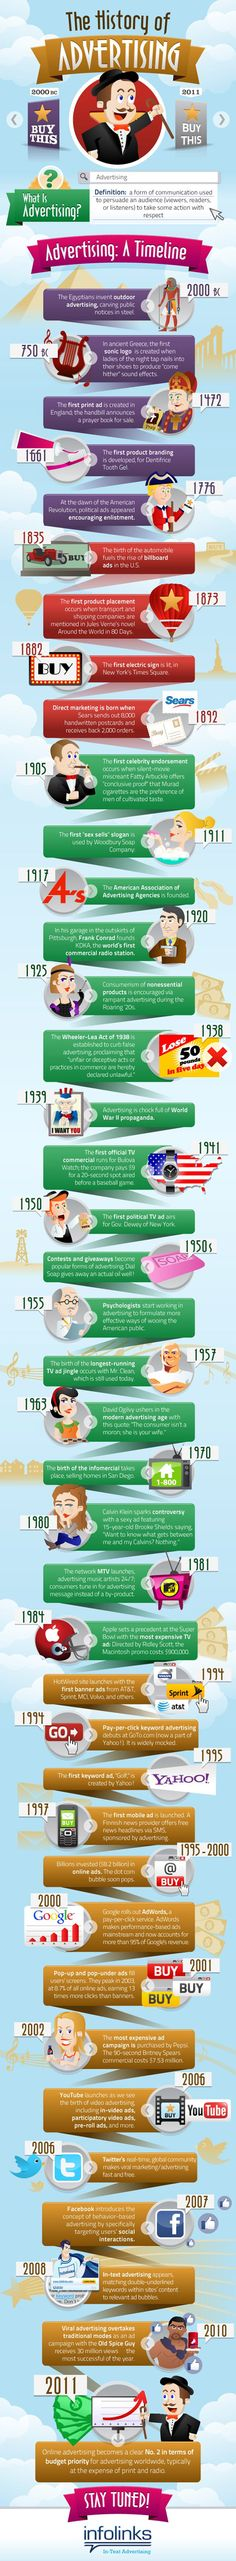 How far we've come in the history of advertising